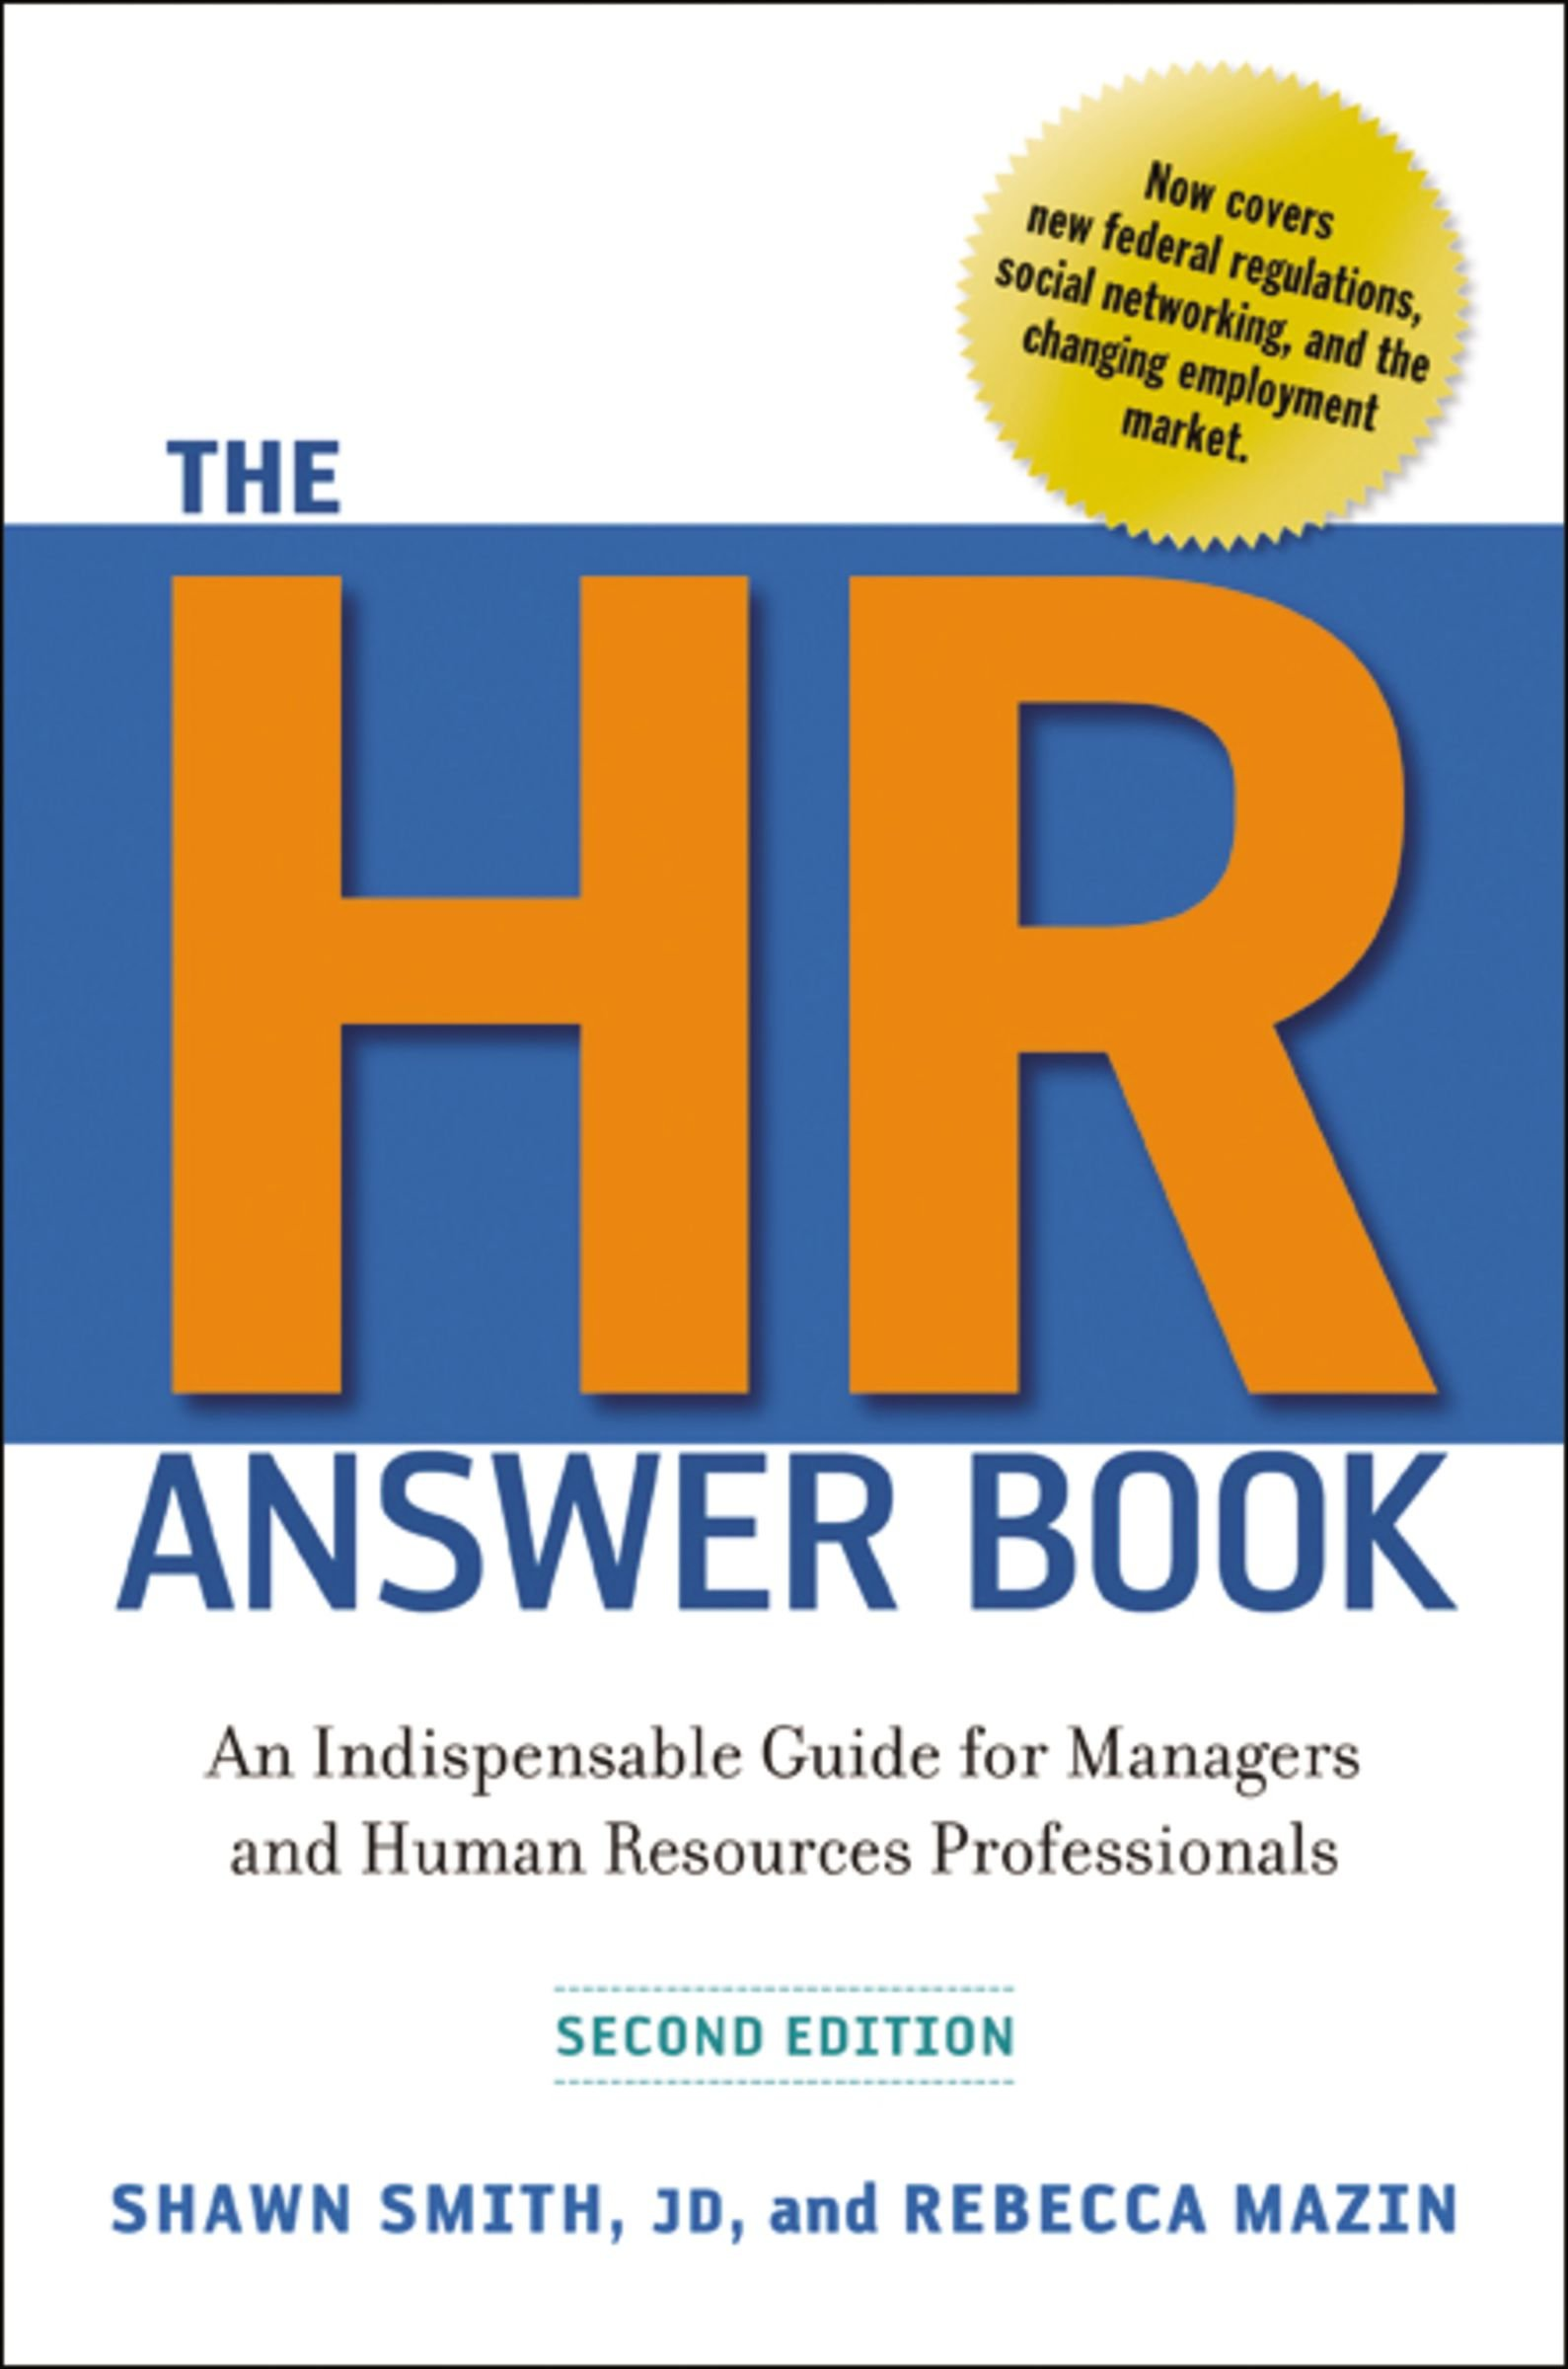 The Hr Answer Book: An Indispensable Guide for Managers and Human Resources  Professionals: Shawn Smith, Rebecca Mazin: 9780814417171: Amazon.com: Books